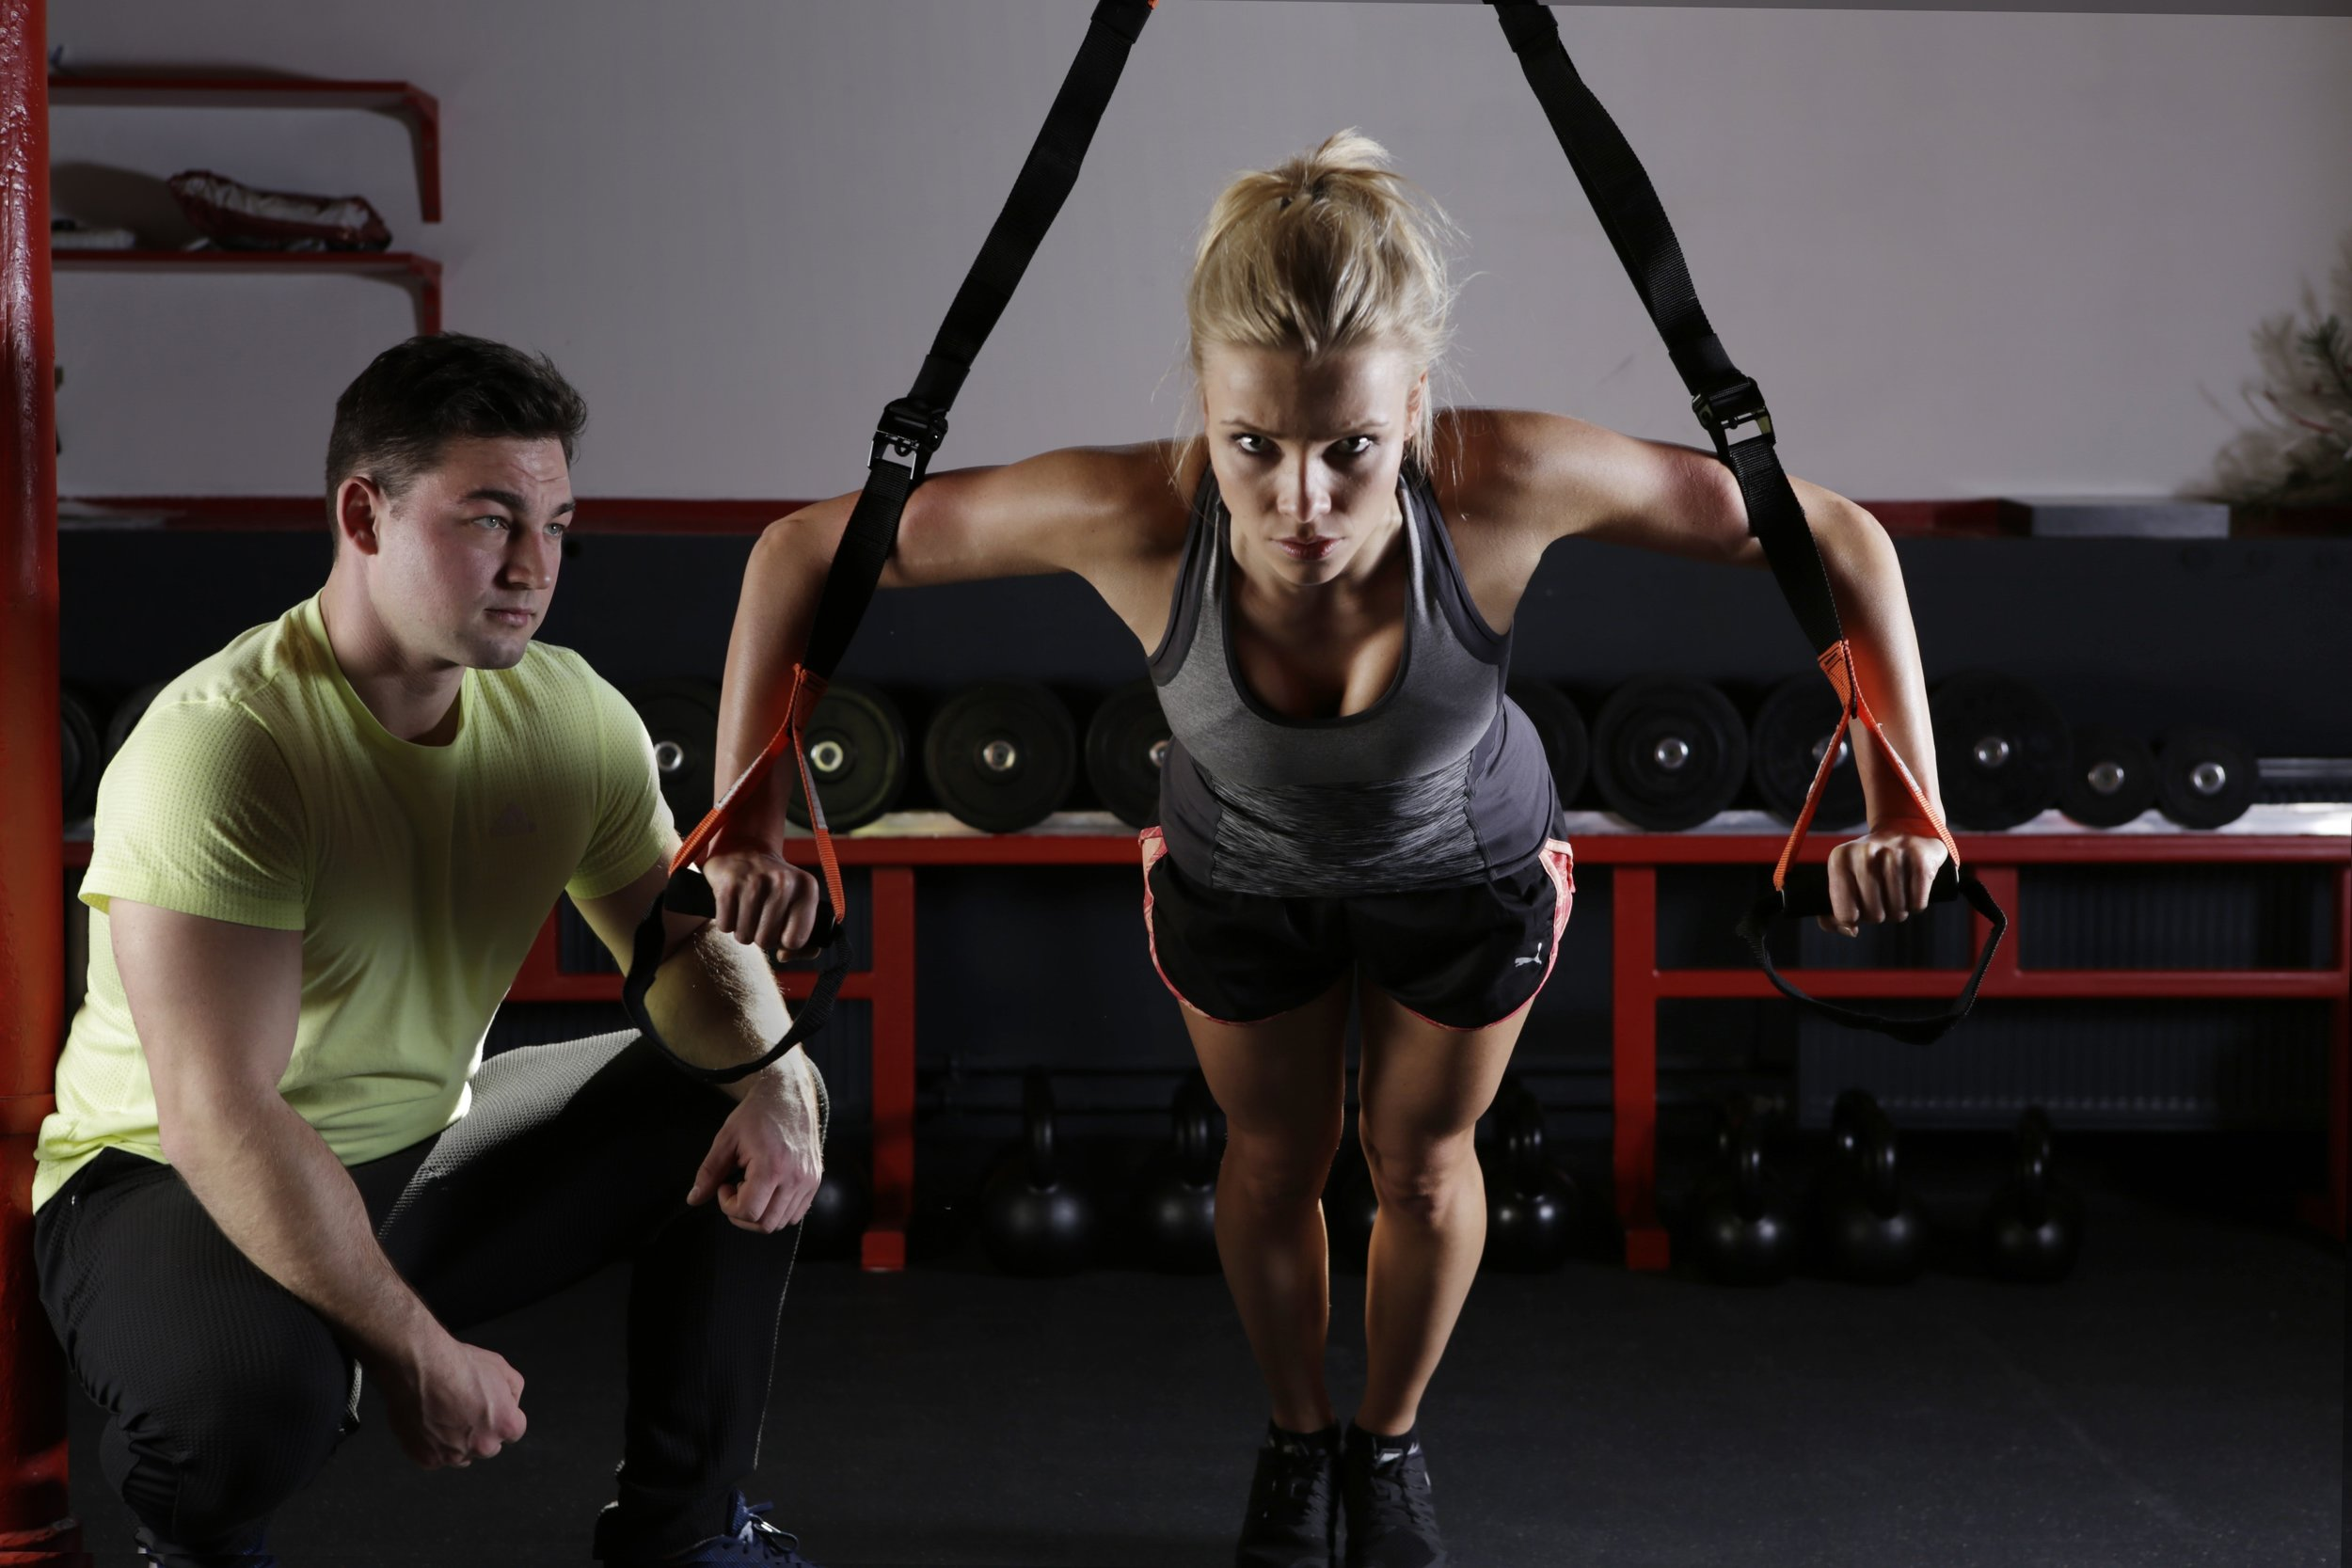 Advanced Nutrition Education For Fitness Trainers - Start Growing Your Fitness Career With Advanced Nutrition Education.